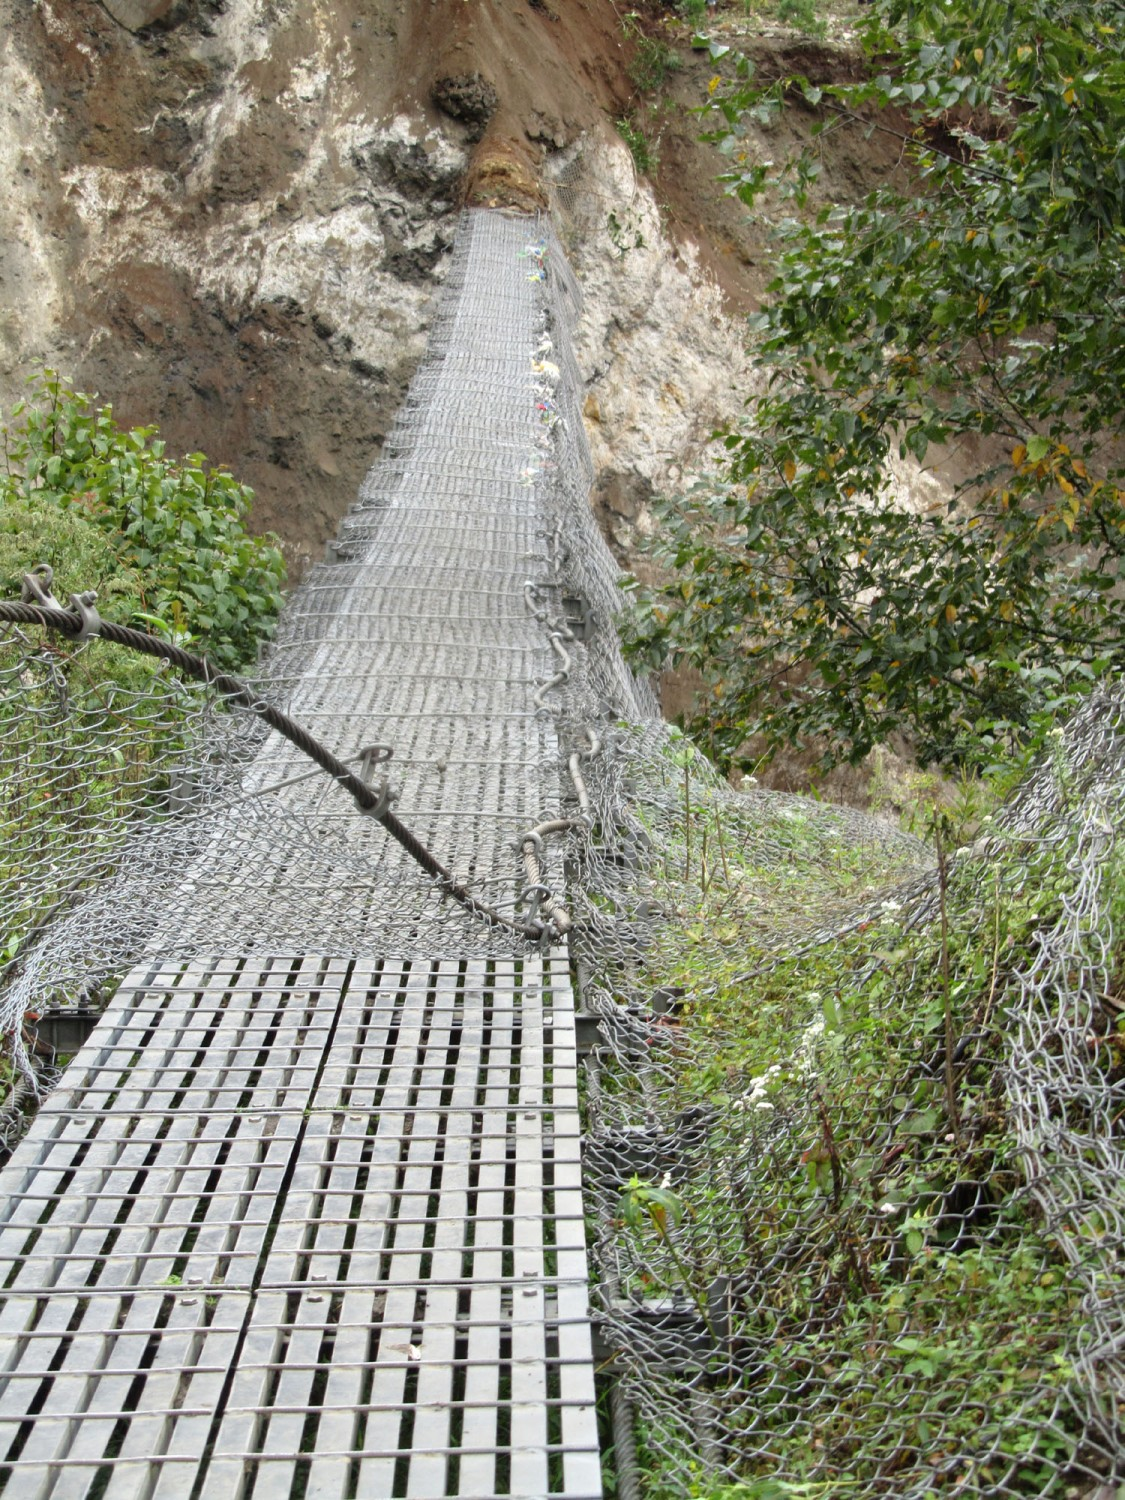 Nepal-Everest-Region-Trek-Day-01-Bridge-Earthquake-Damage